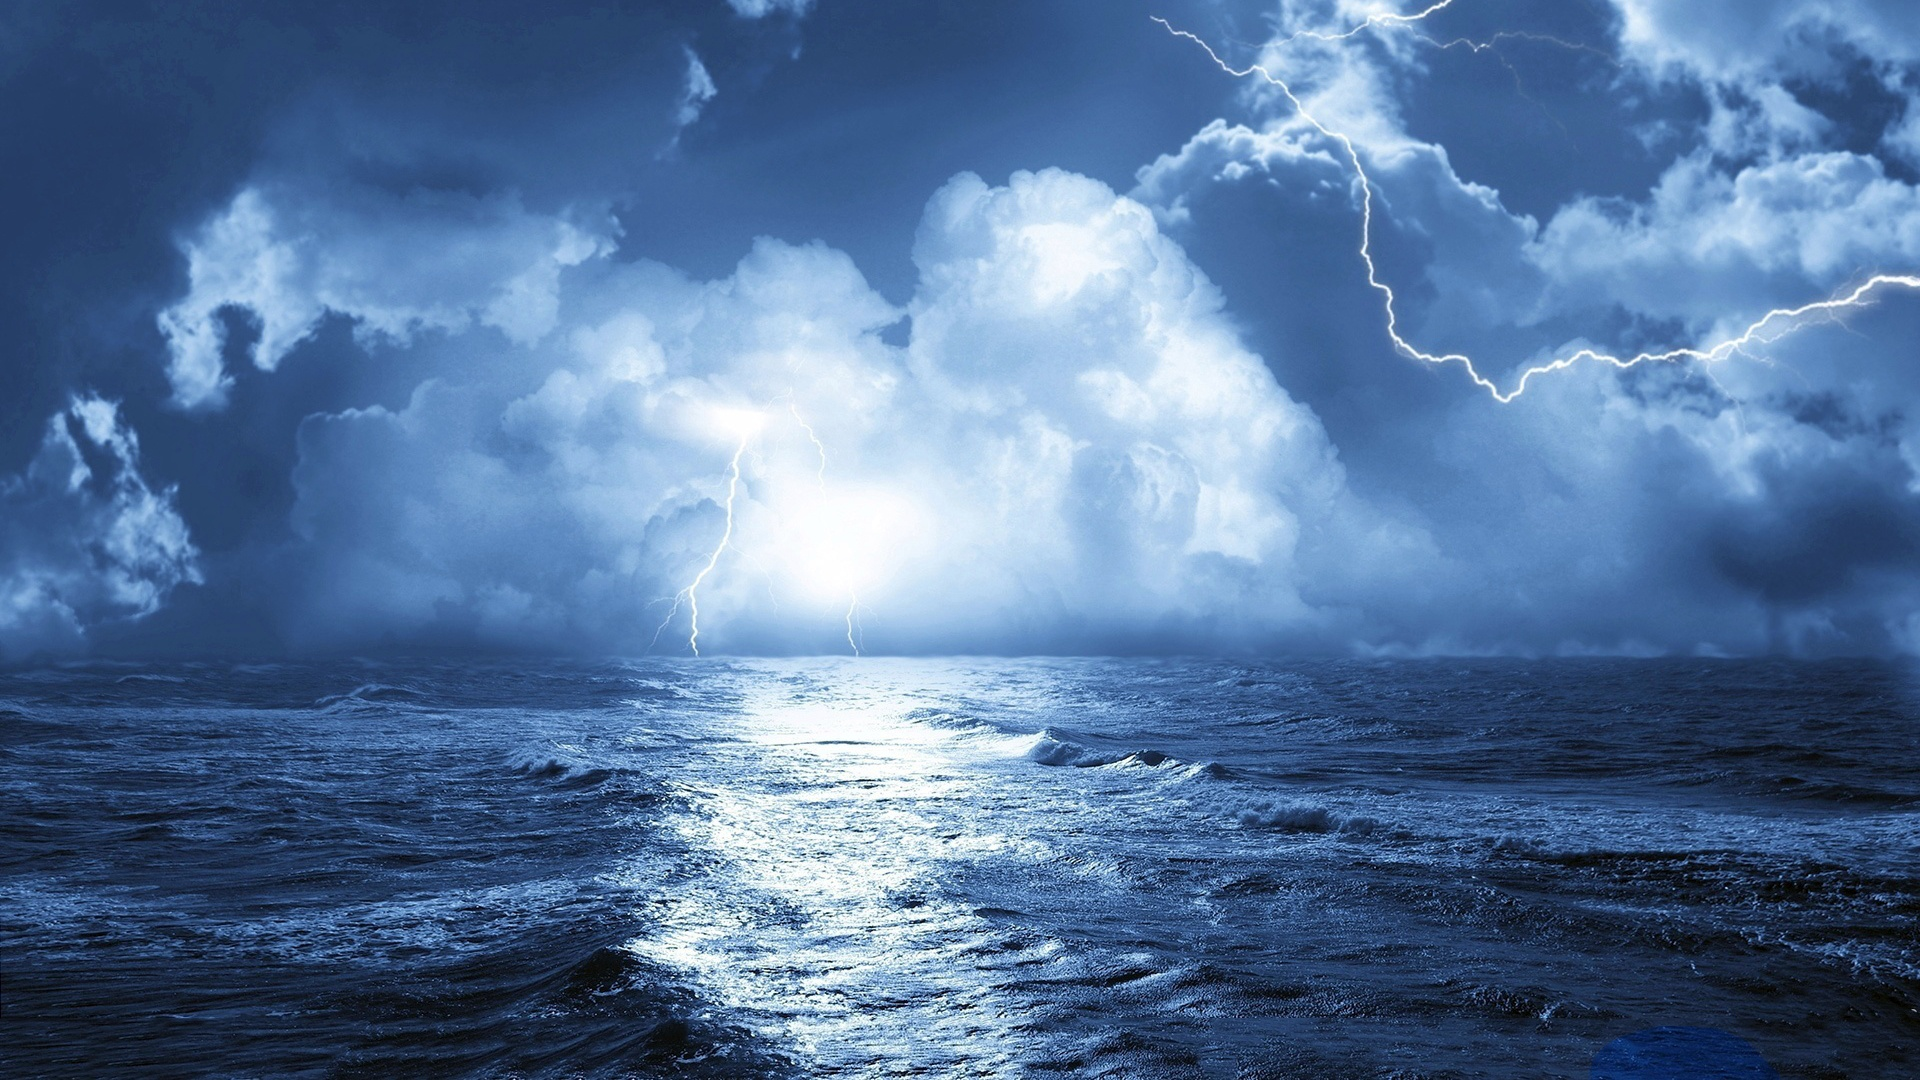 Storm over sea